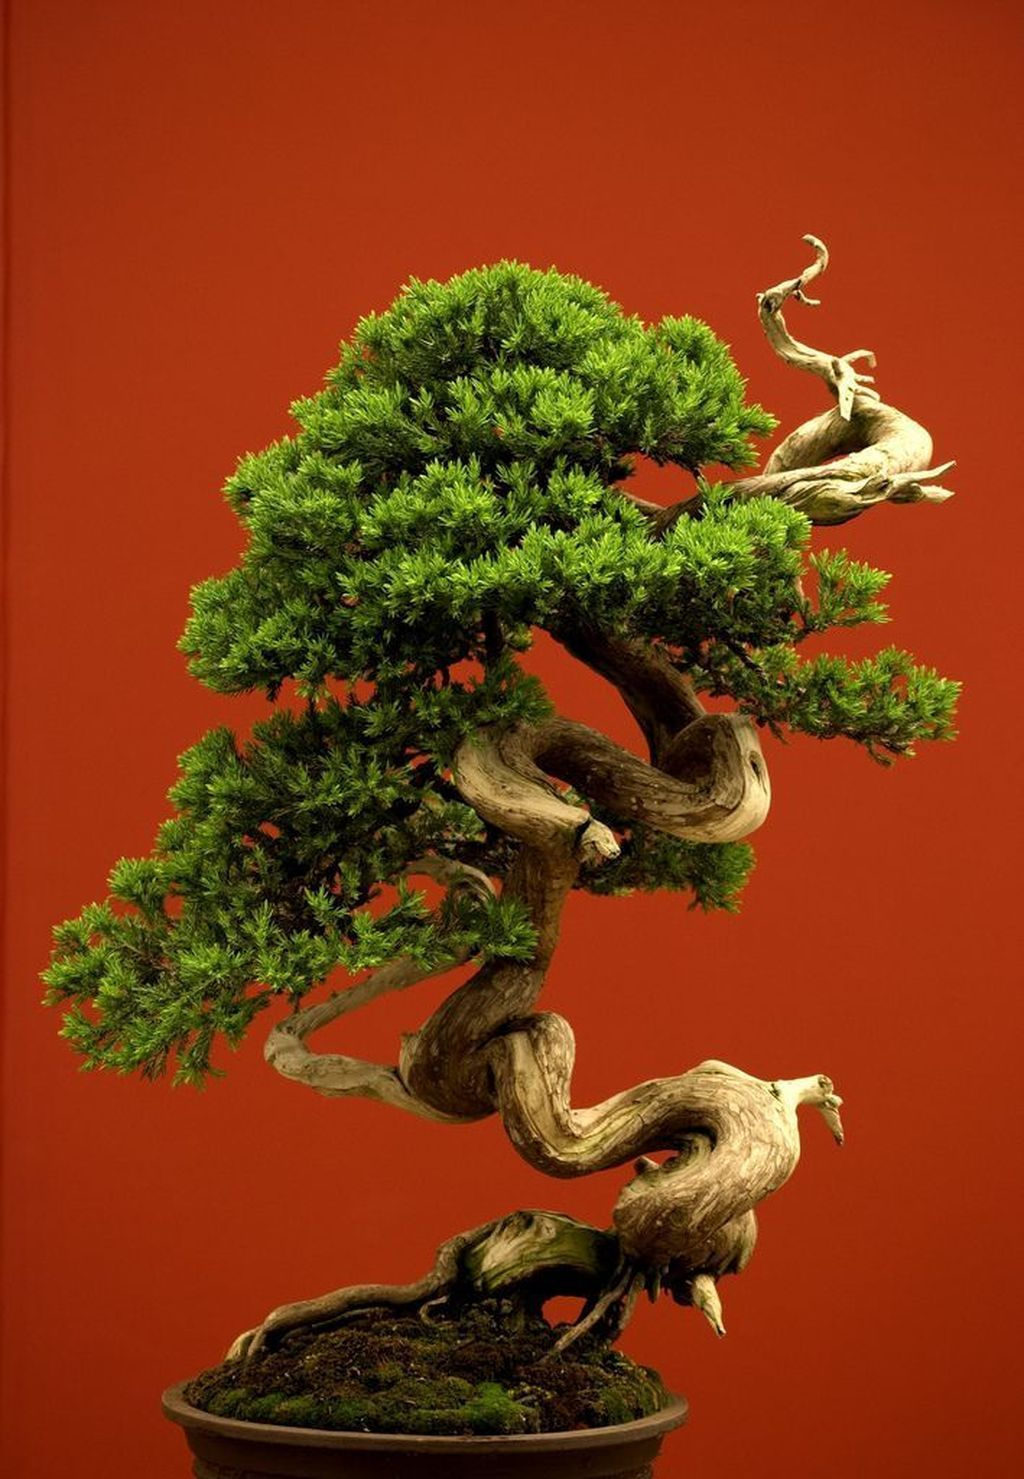 20+ Stunning Bonsai Plant Design Ideas For Garden #bonsaiplants